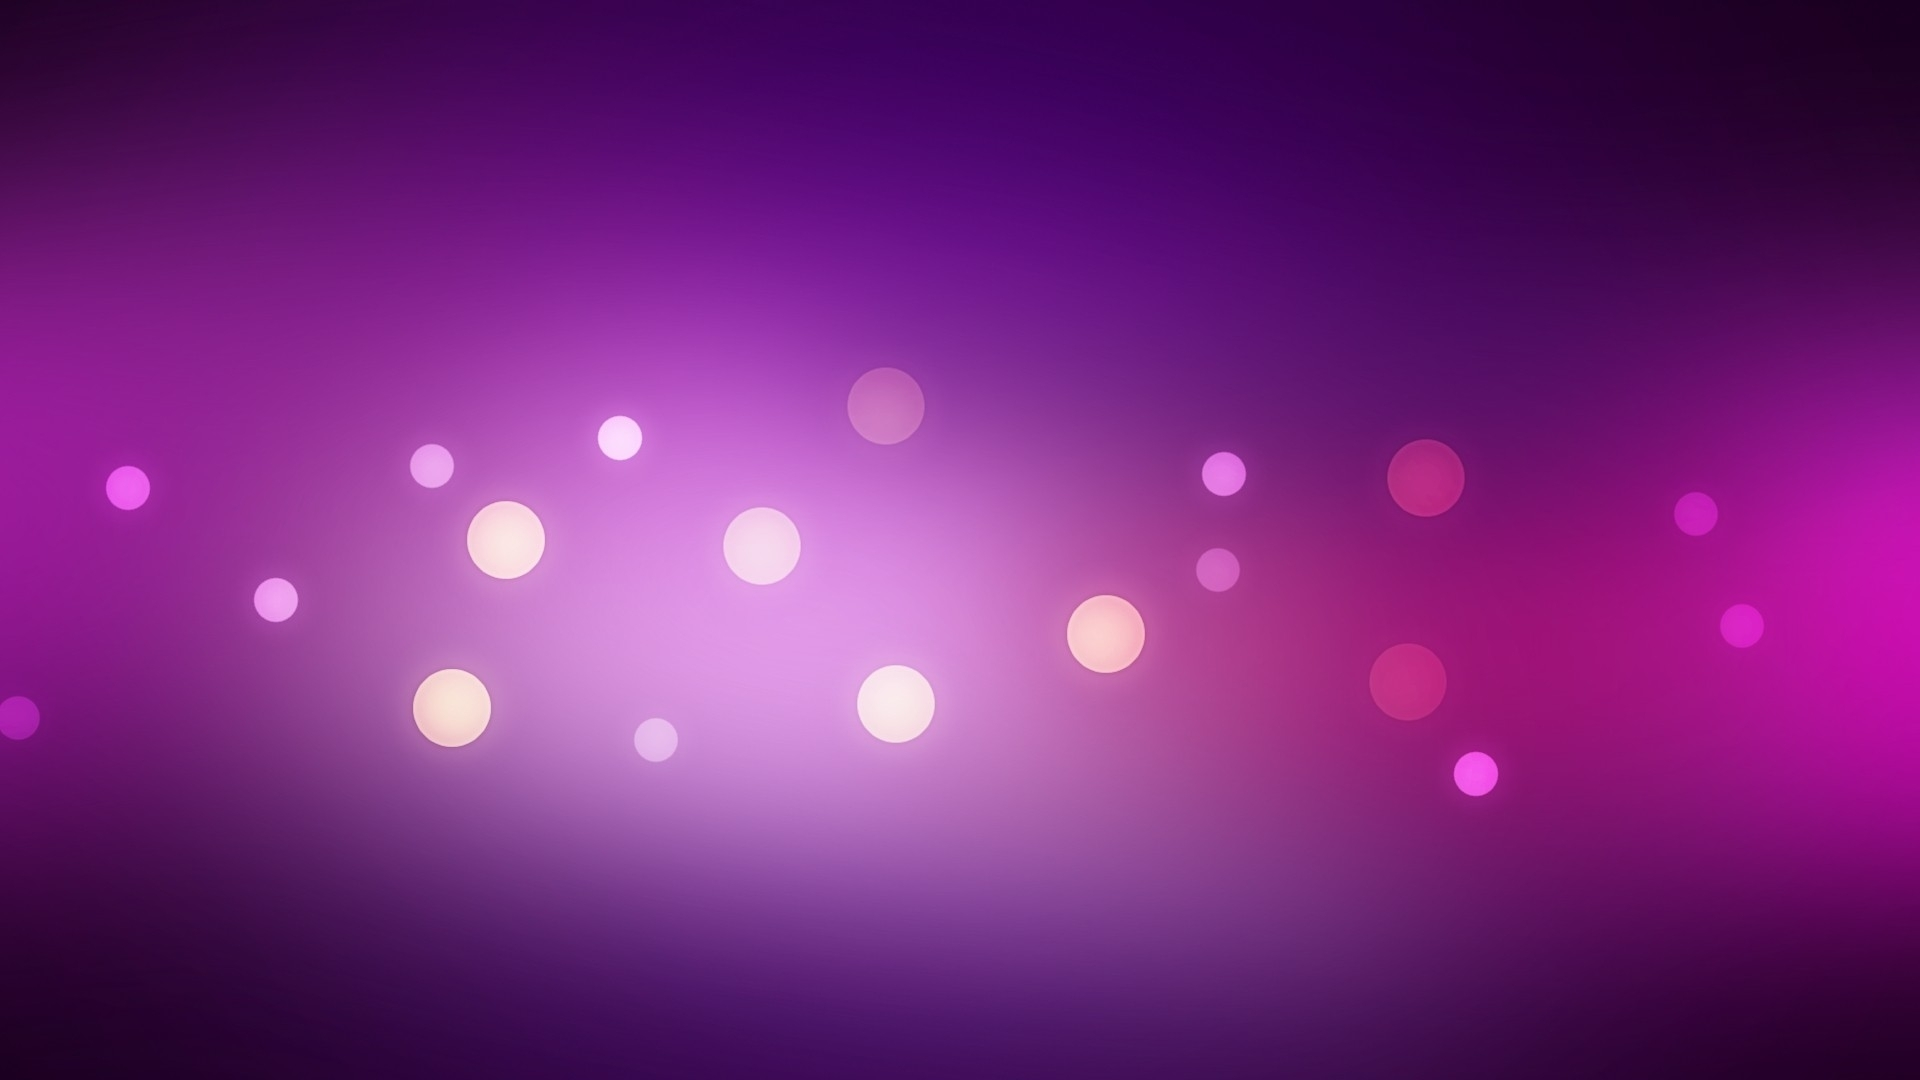 Purple Abstract wallpapers for desktop